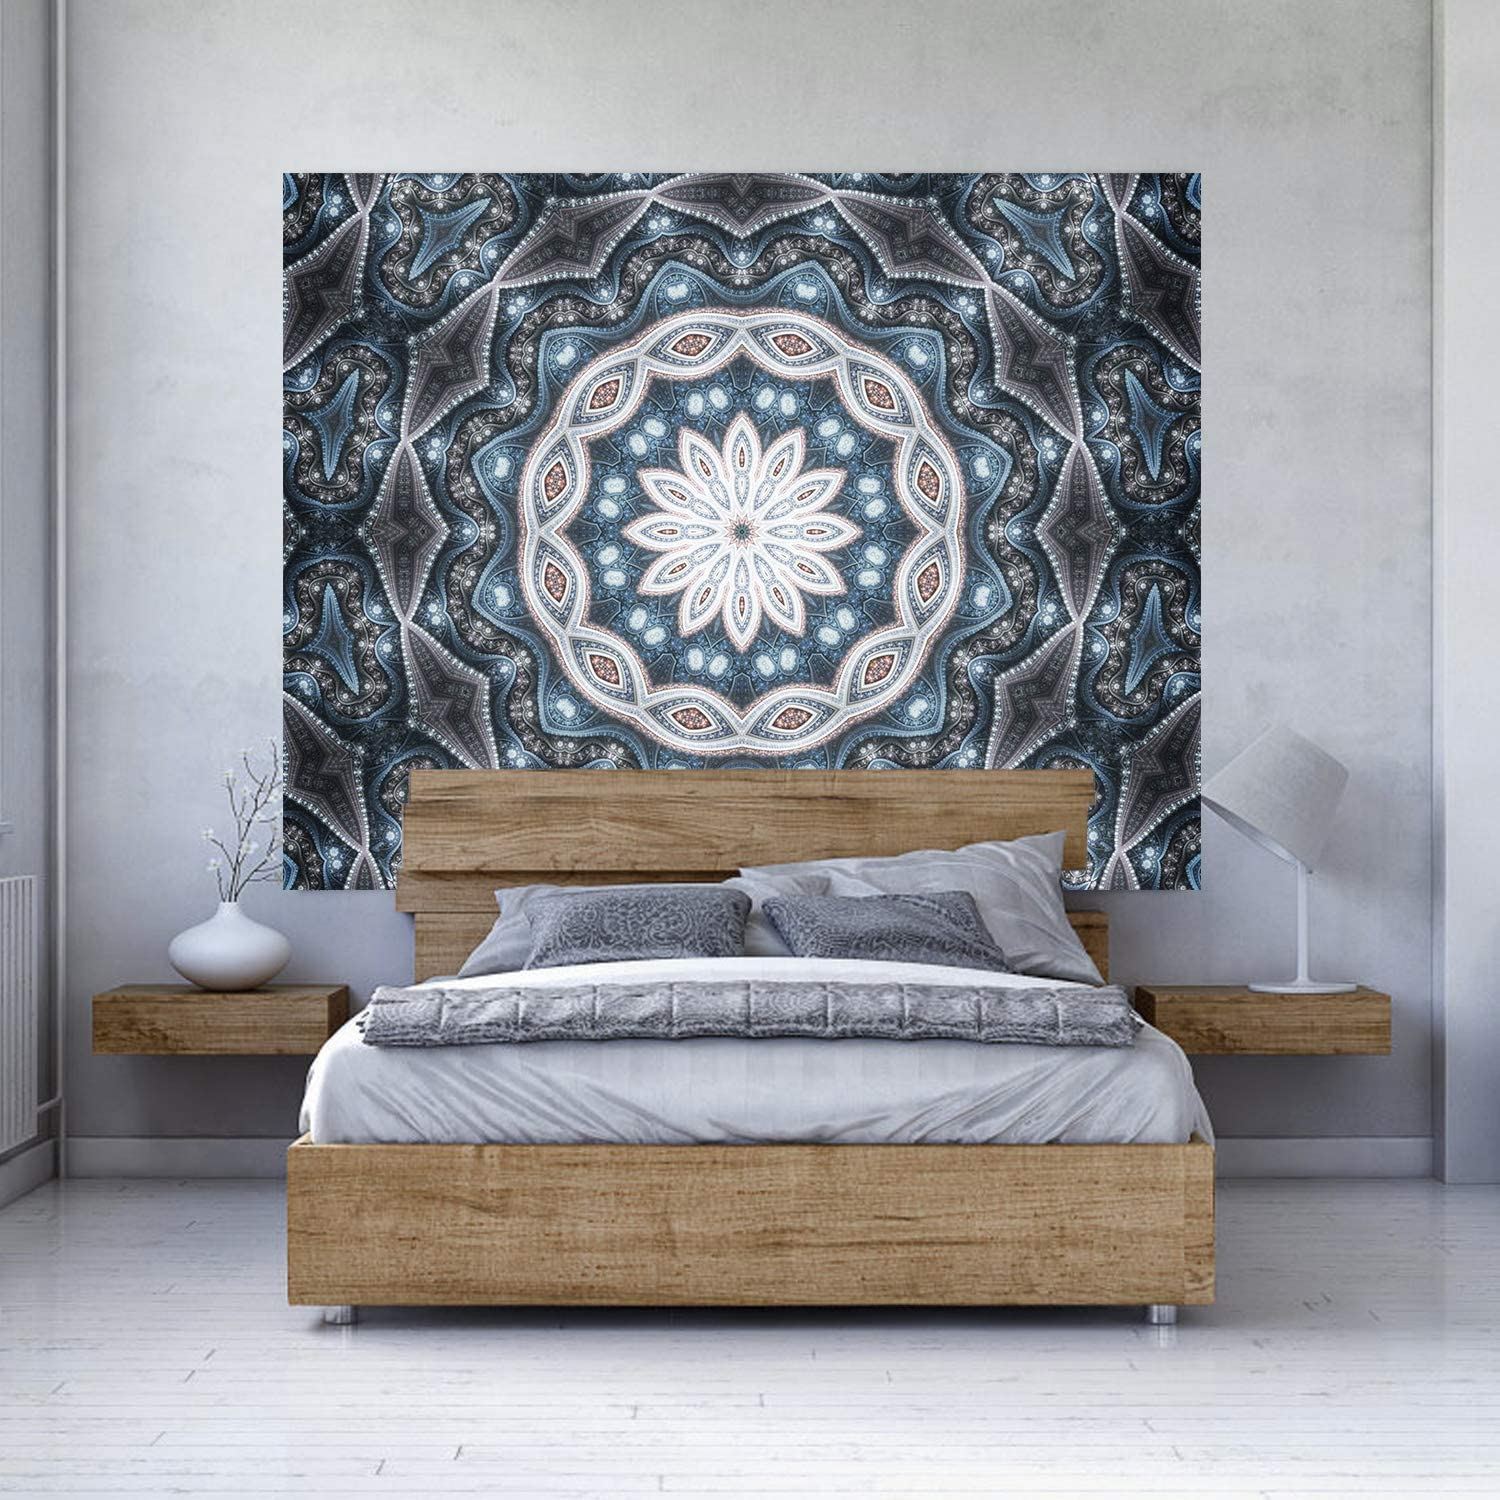 Tapestries Hanging for Decor Bedroom Dorm Bedspread Picnic Blanket Matching Multi Style and 3 Size Blue, S:W 37.4/×H 28.7 FHSQX Art Handicrafts Hippie Mandala Tapestry Wall Hanging